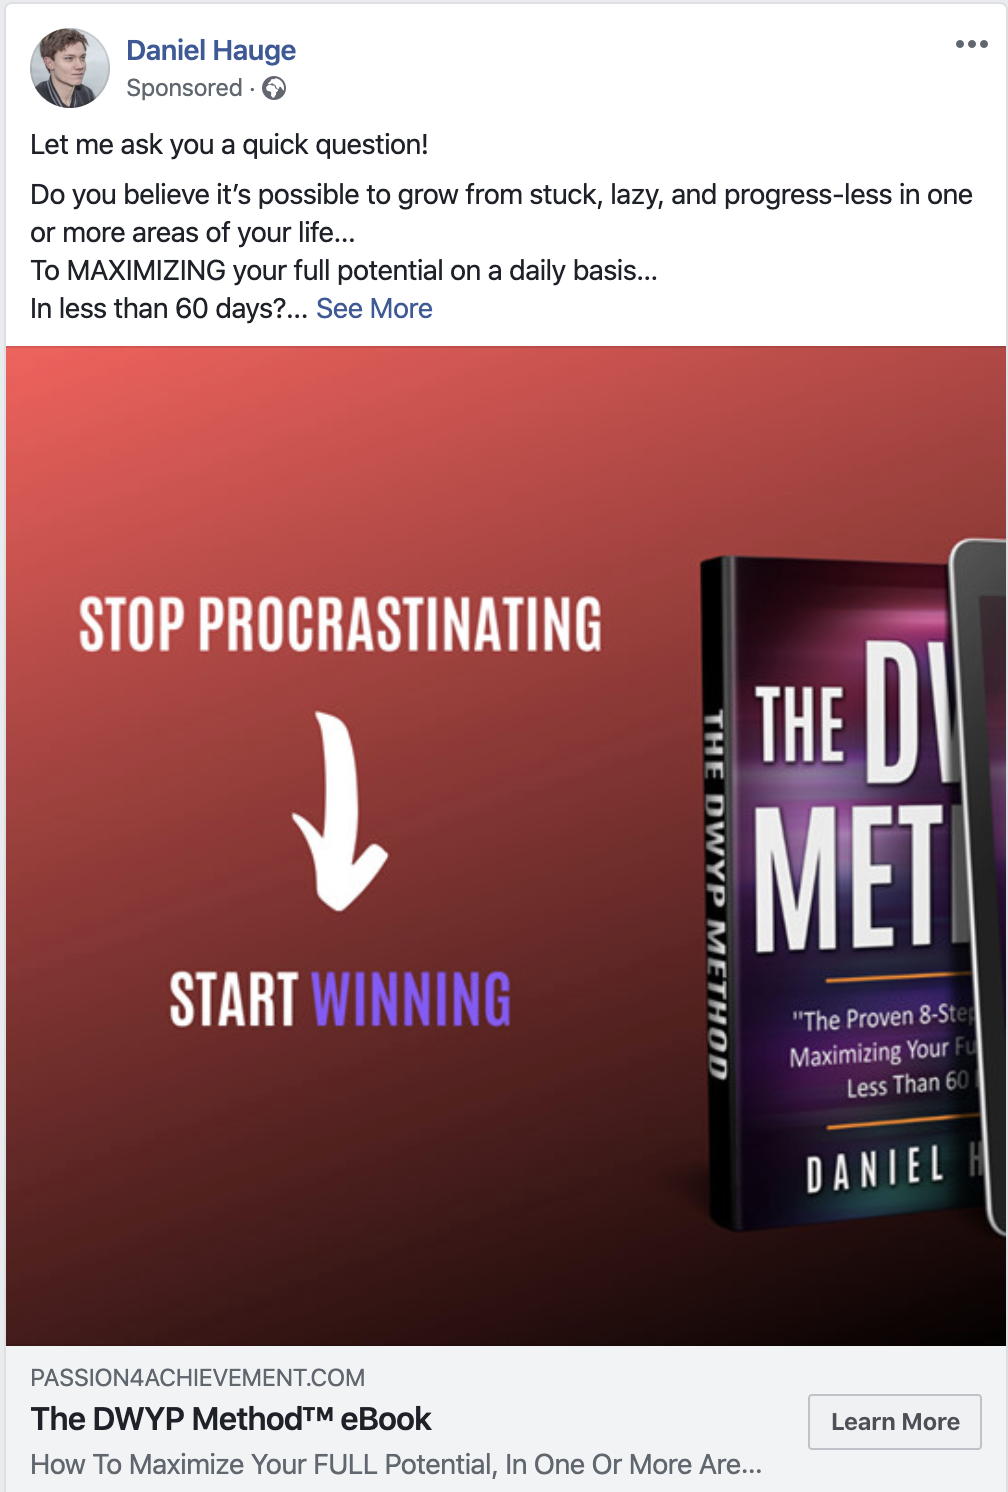 Example of a Facebook Lead Ad promoting an ebook.